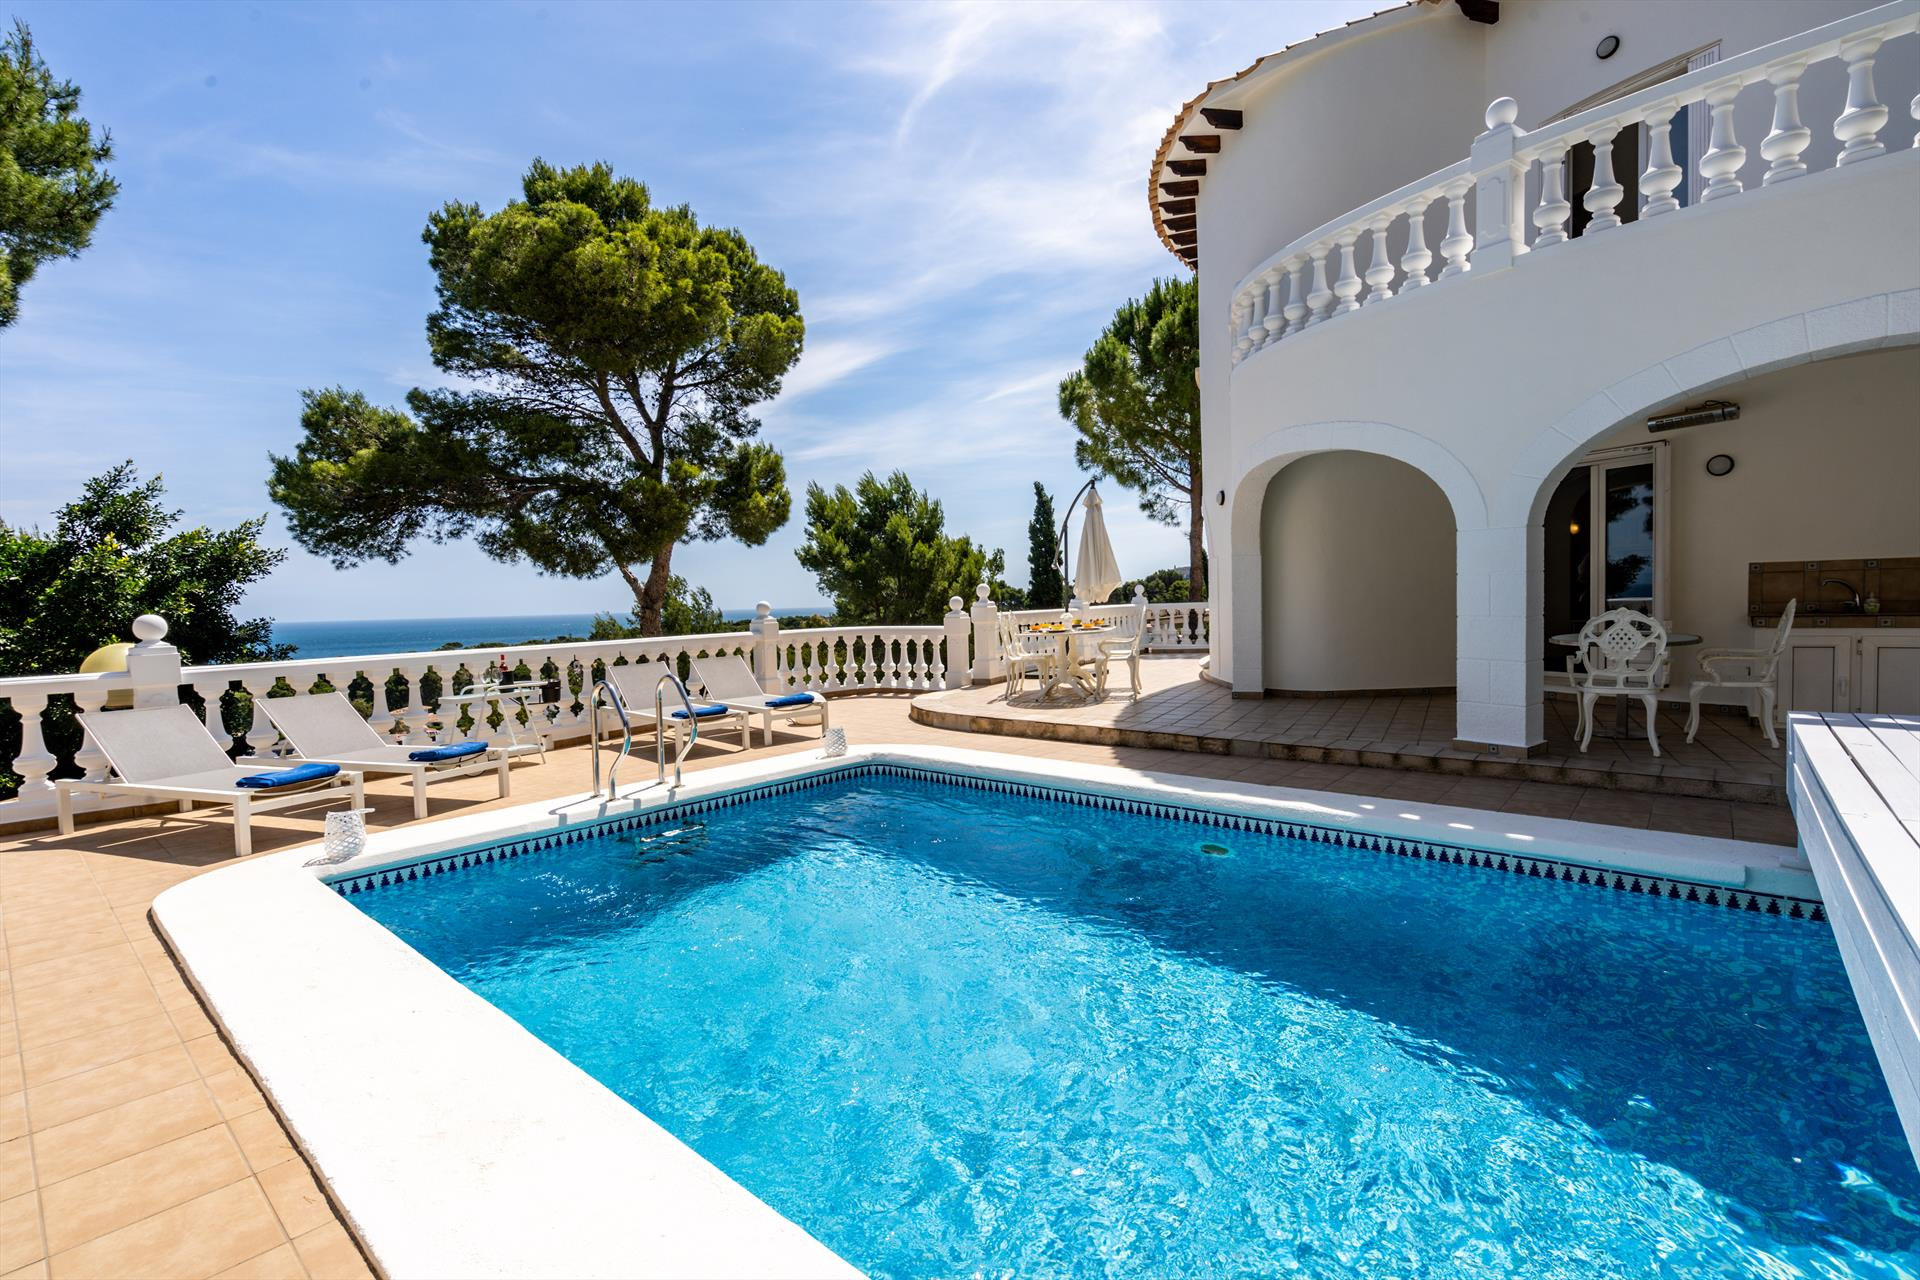 Villa Colina de los Pinos, Lovely and luxury villa in Denia, on the Costa Blanca, Spain with private pool for 6 persons. The villa is situated in a.....